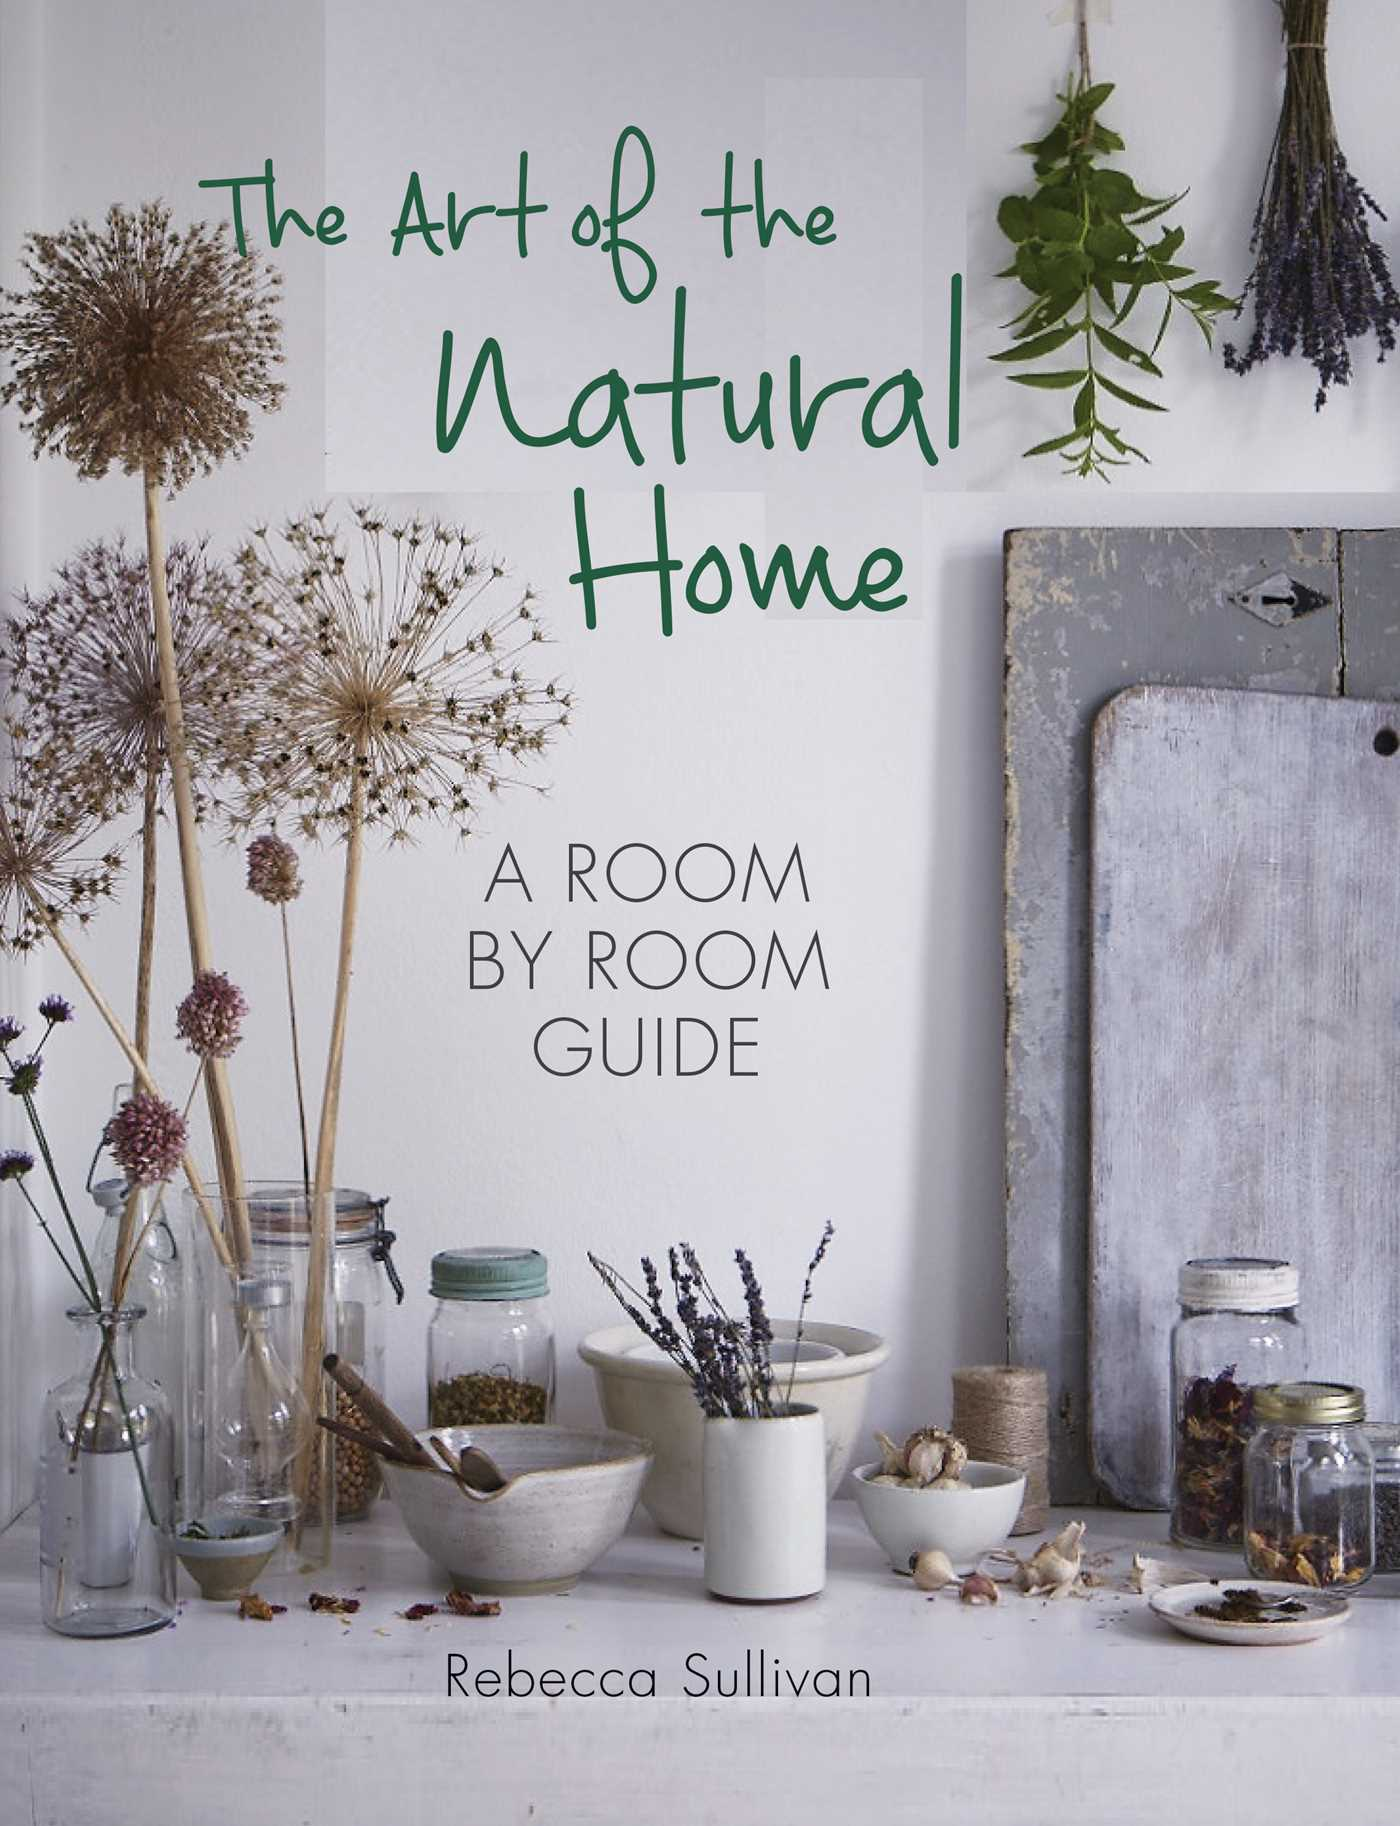 The art of the natural home a room by room guide 9780857834065 hr